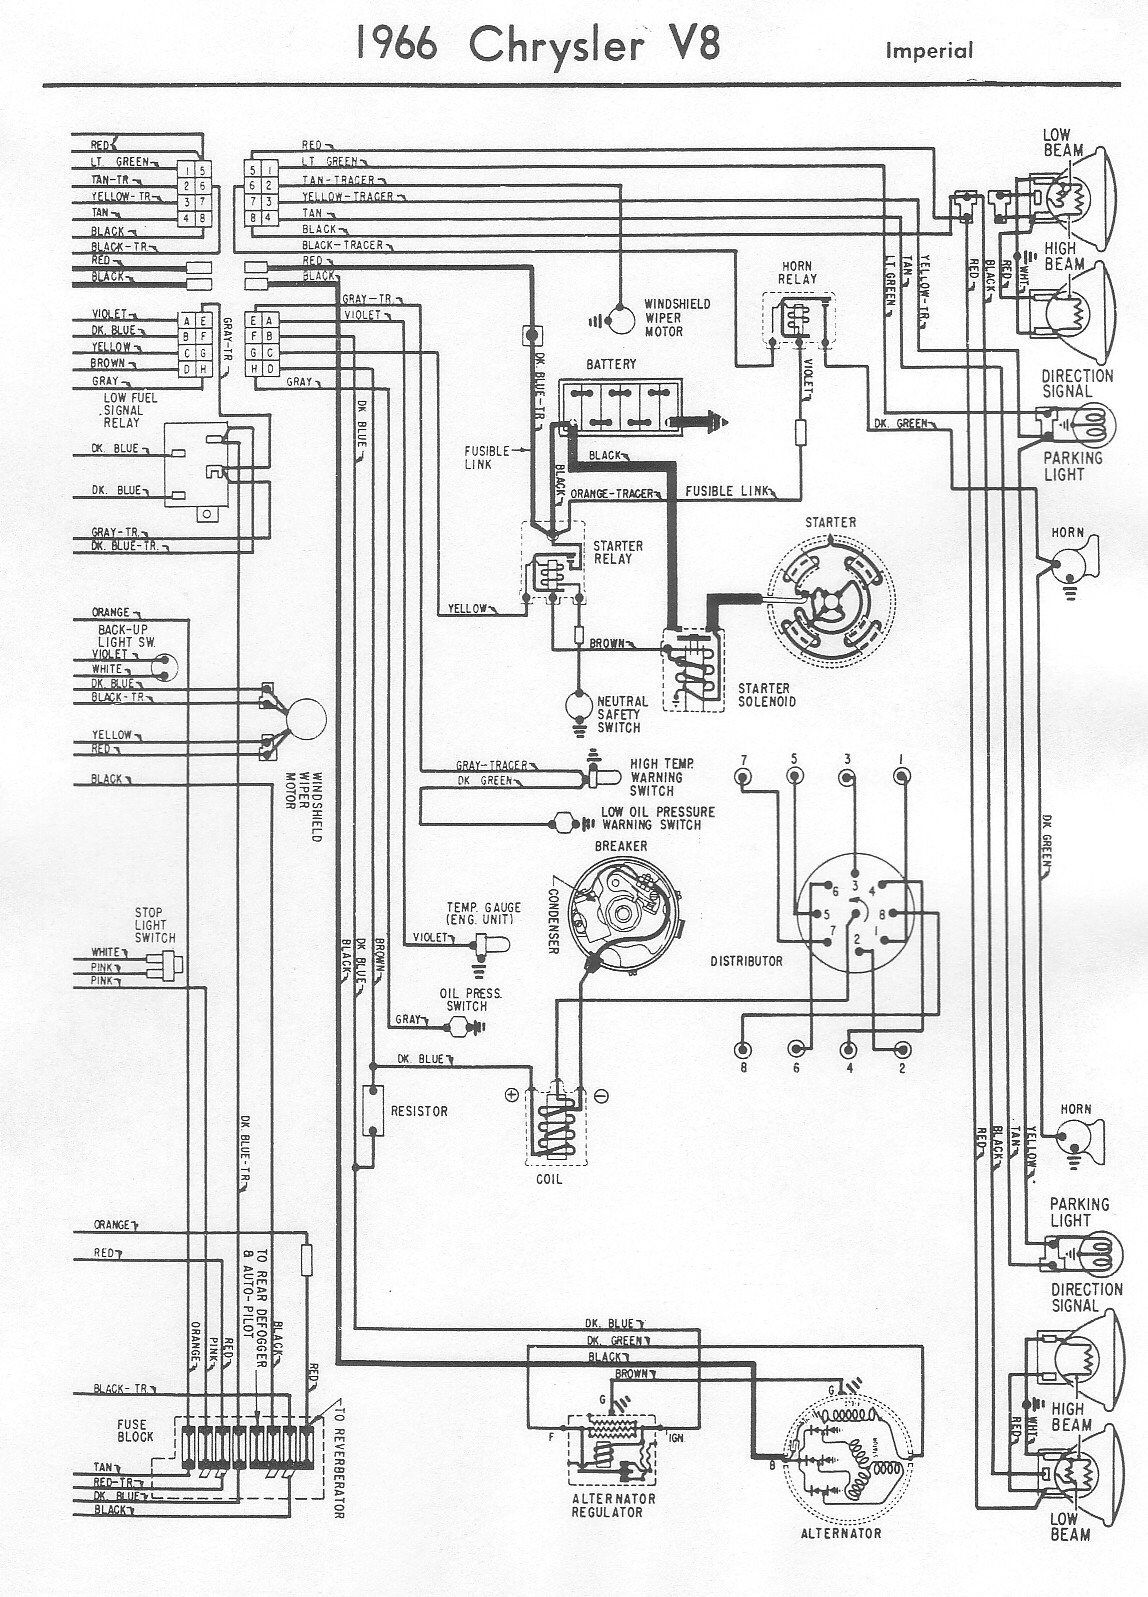 Plymouth Lights Wiring Diagram : Free auto wiring diagram plymouth belvedere gtx